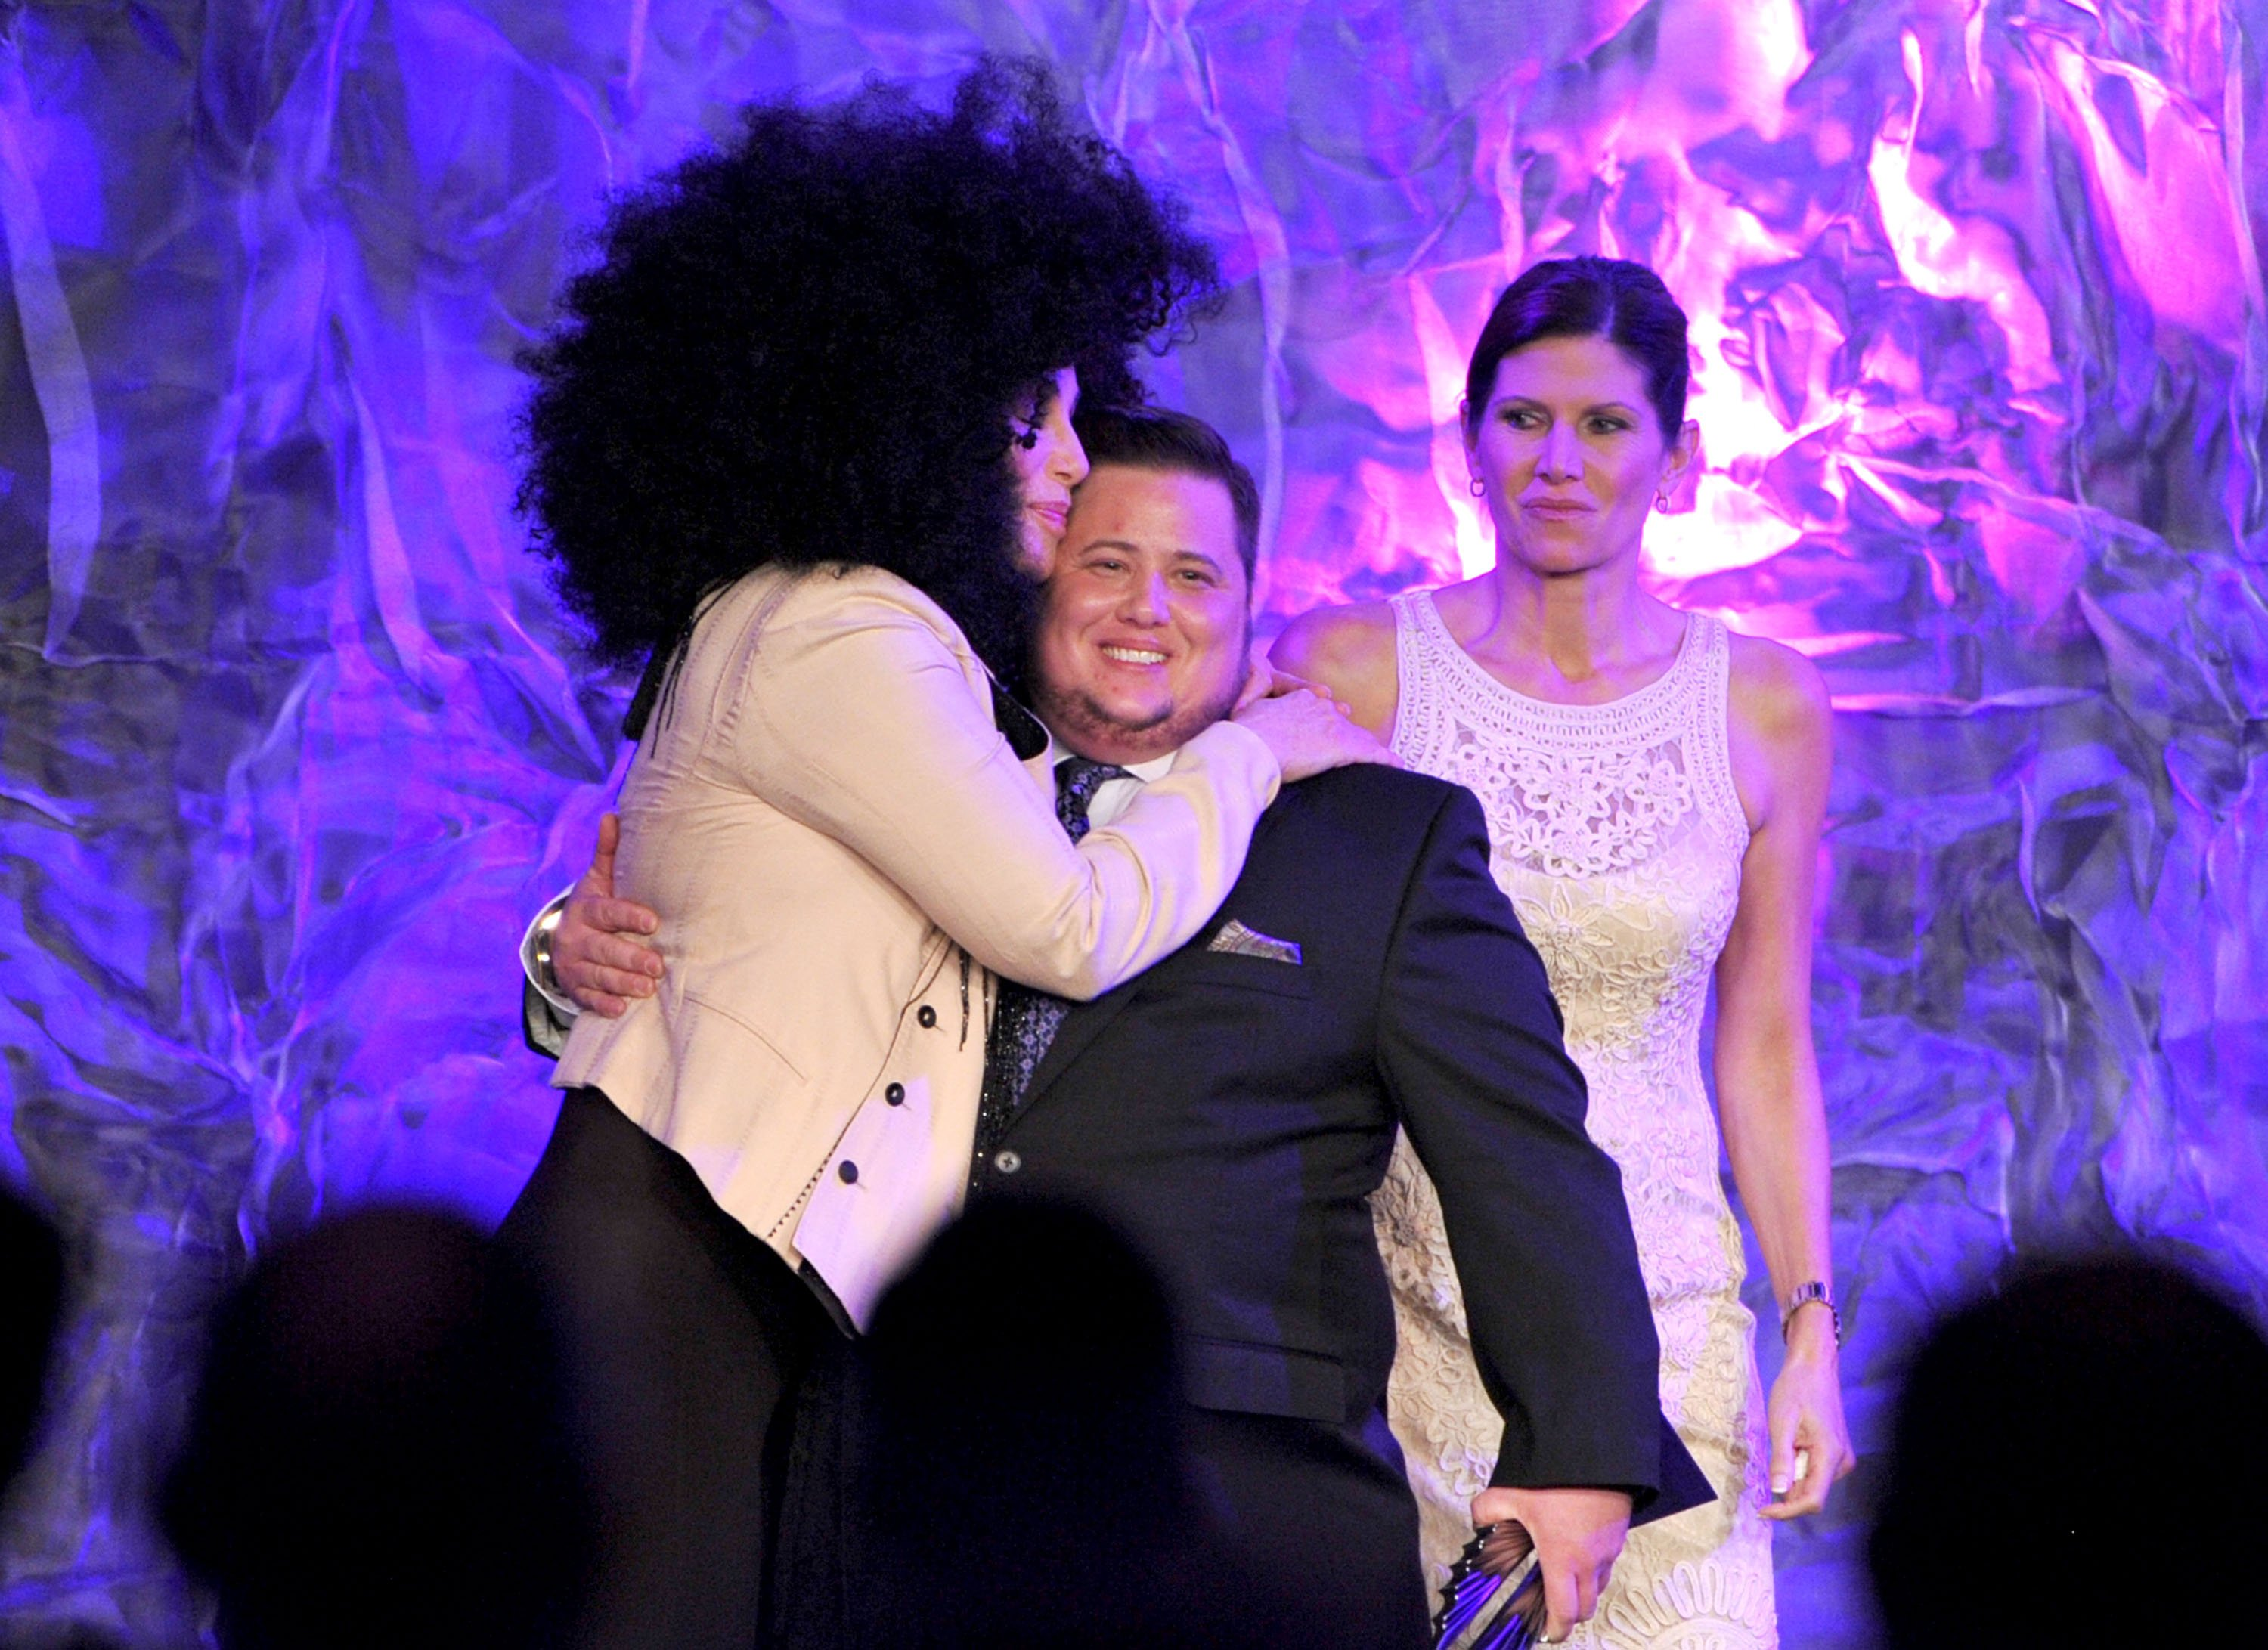 Image Source: Getty Images/ Cher and her son Chaz hugging